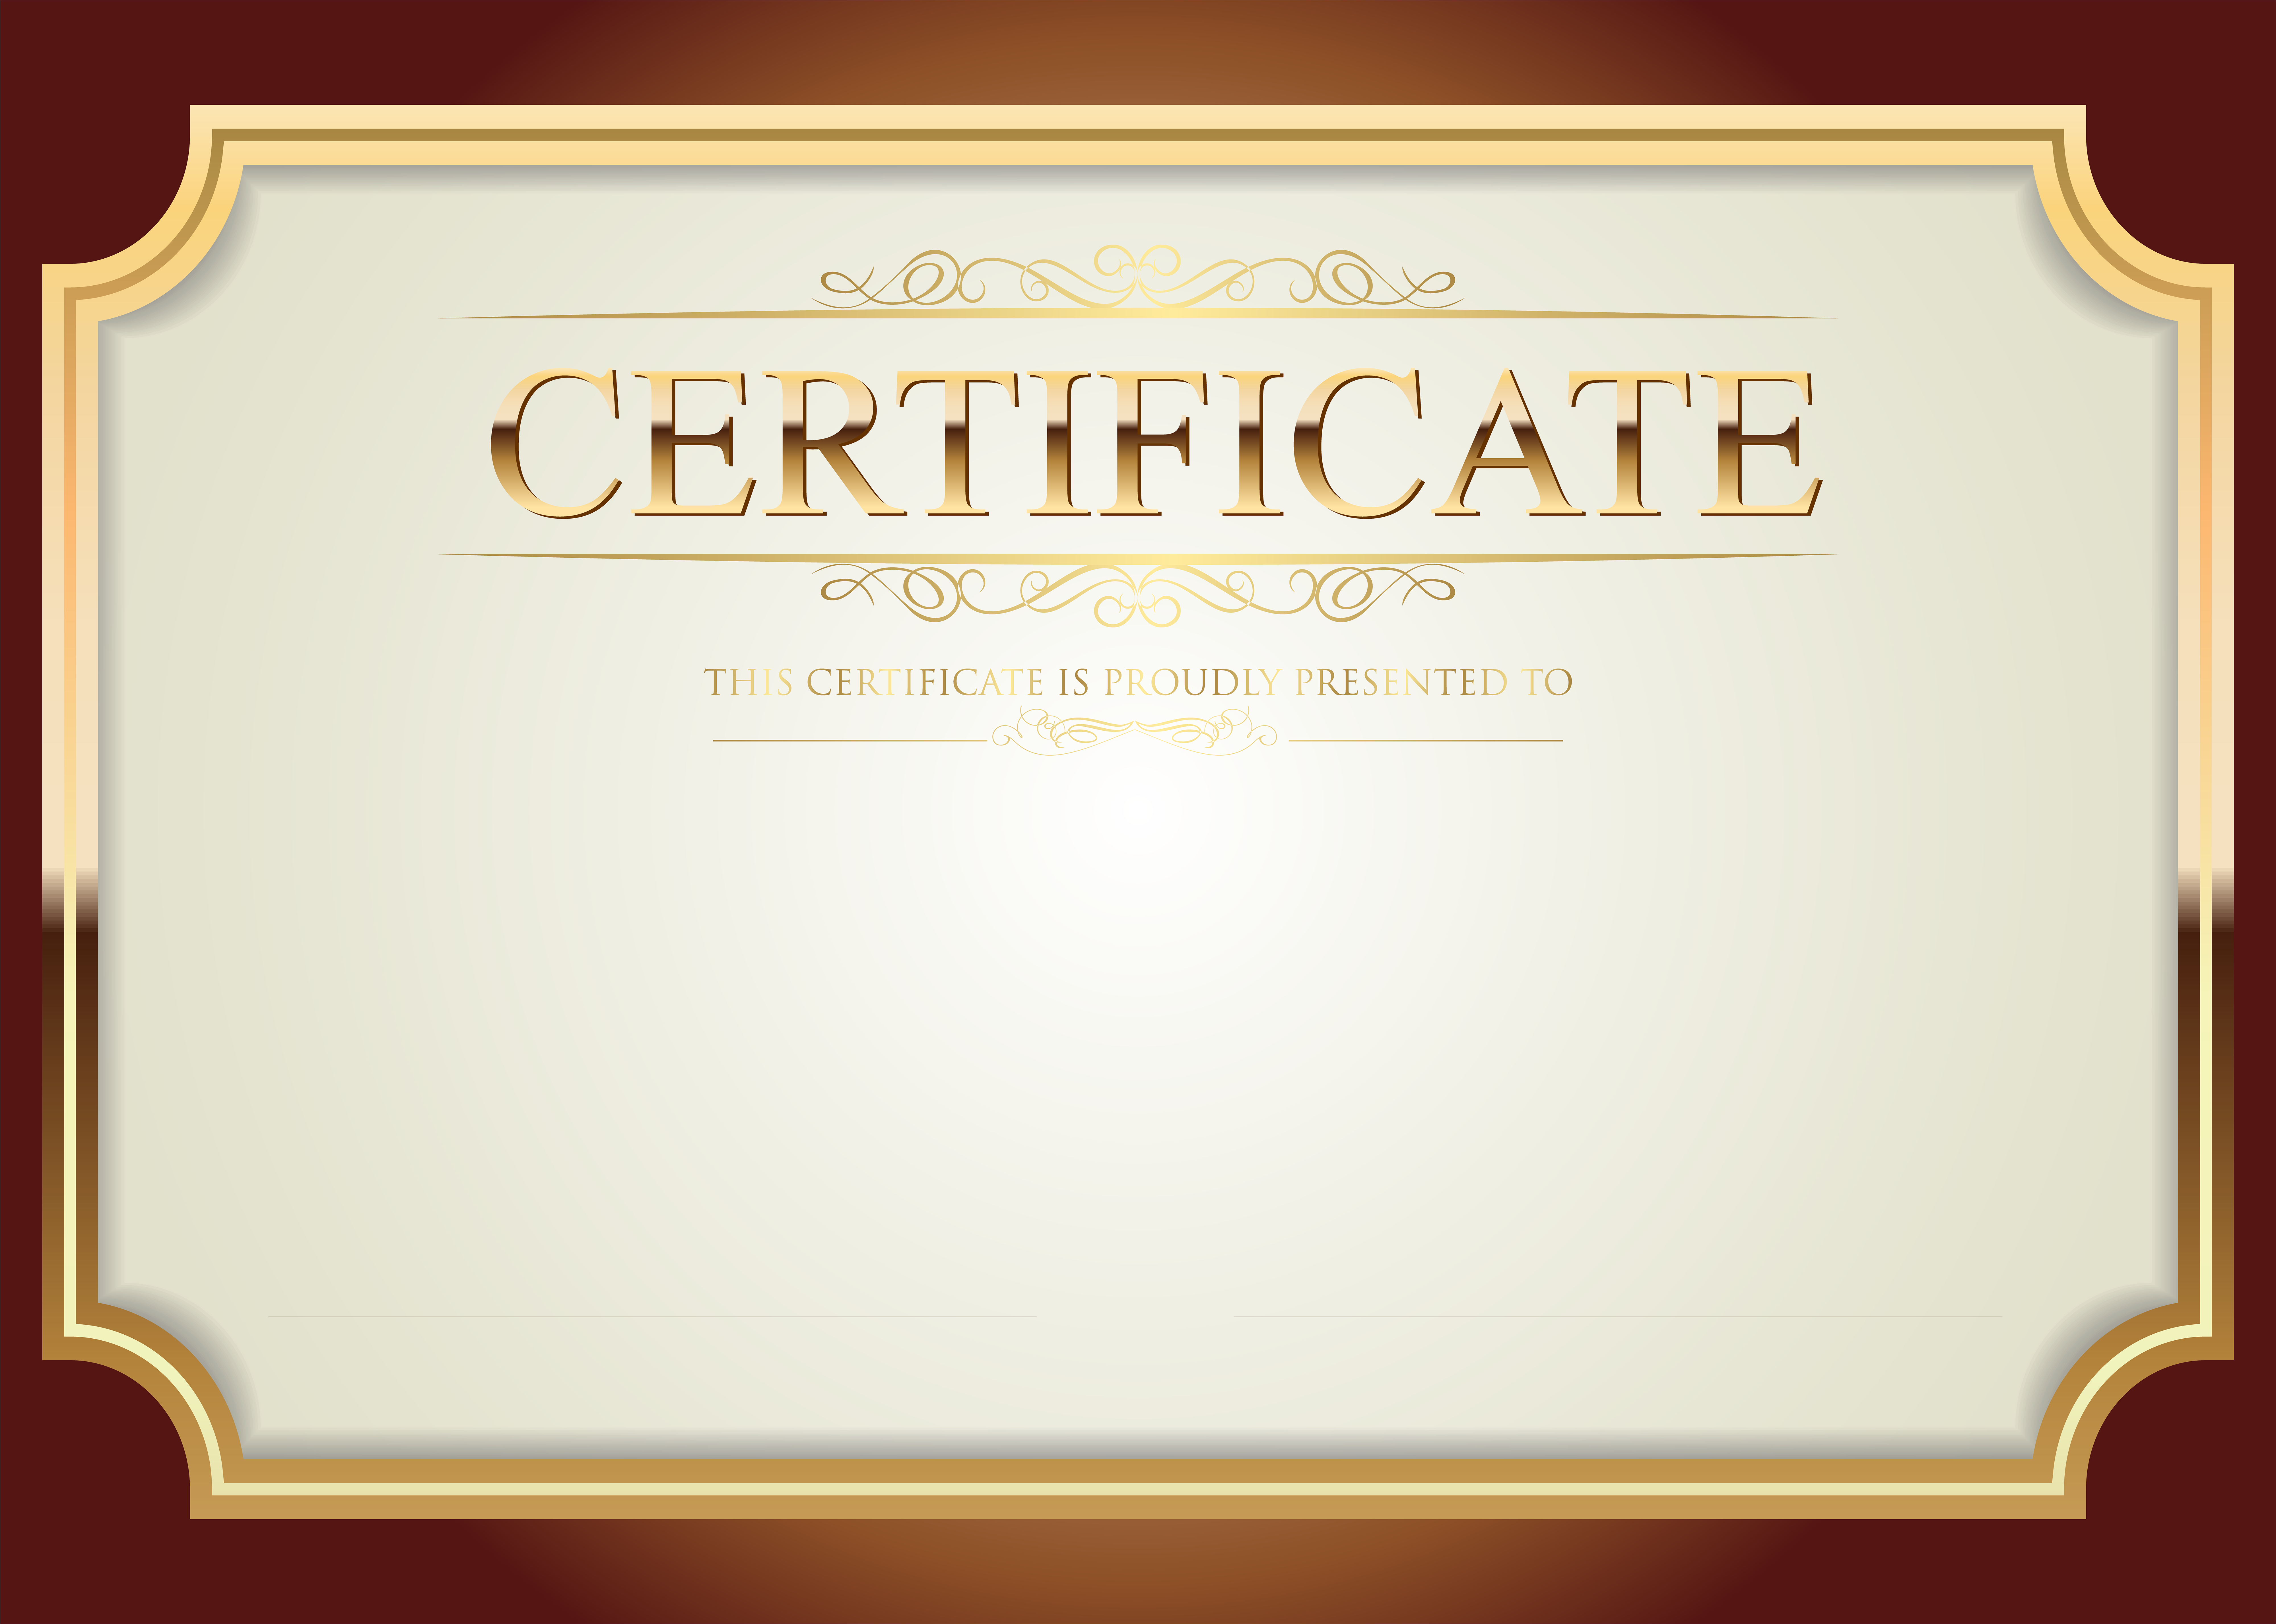 Certificate Template PNG Clip Art | Gallery Yopriceville - High-Quality  Images and Transparent